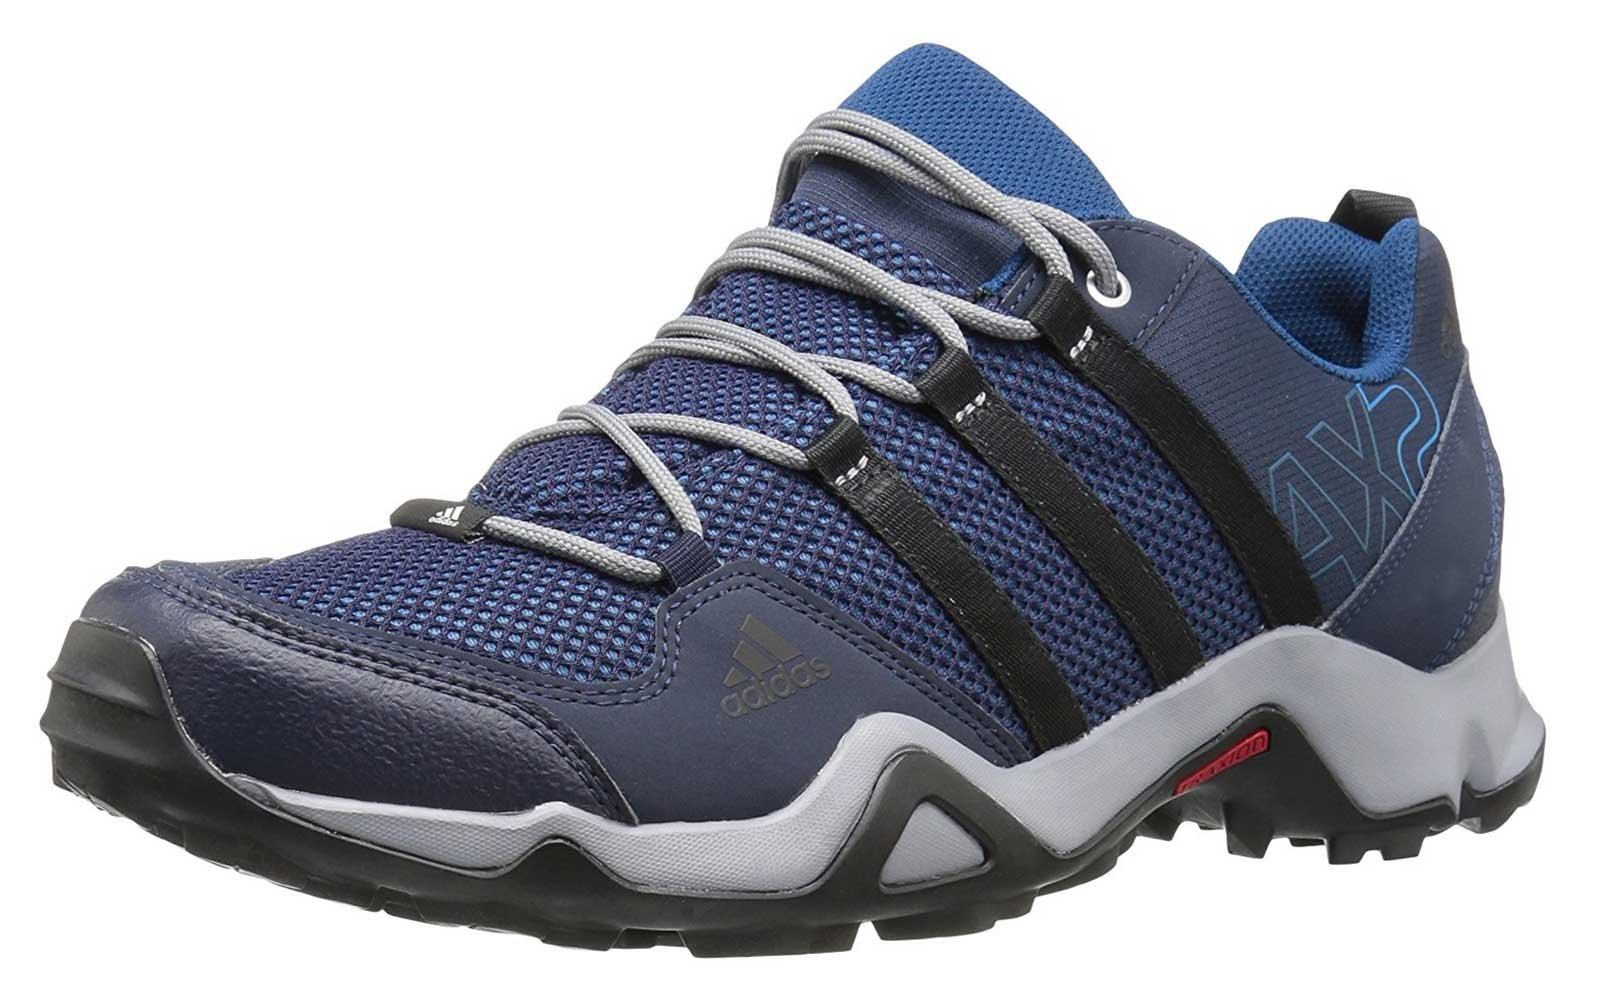 6ca31cc7a7d03 The 10 Best Hiking Shoes on Amazon | Travel + Leisure